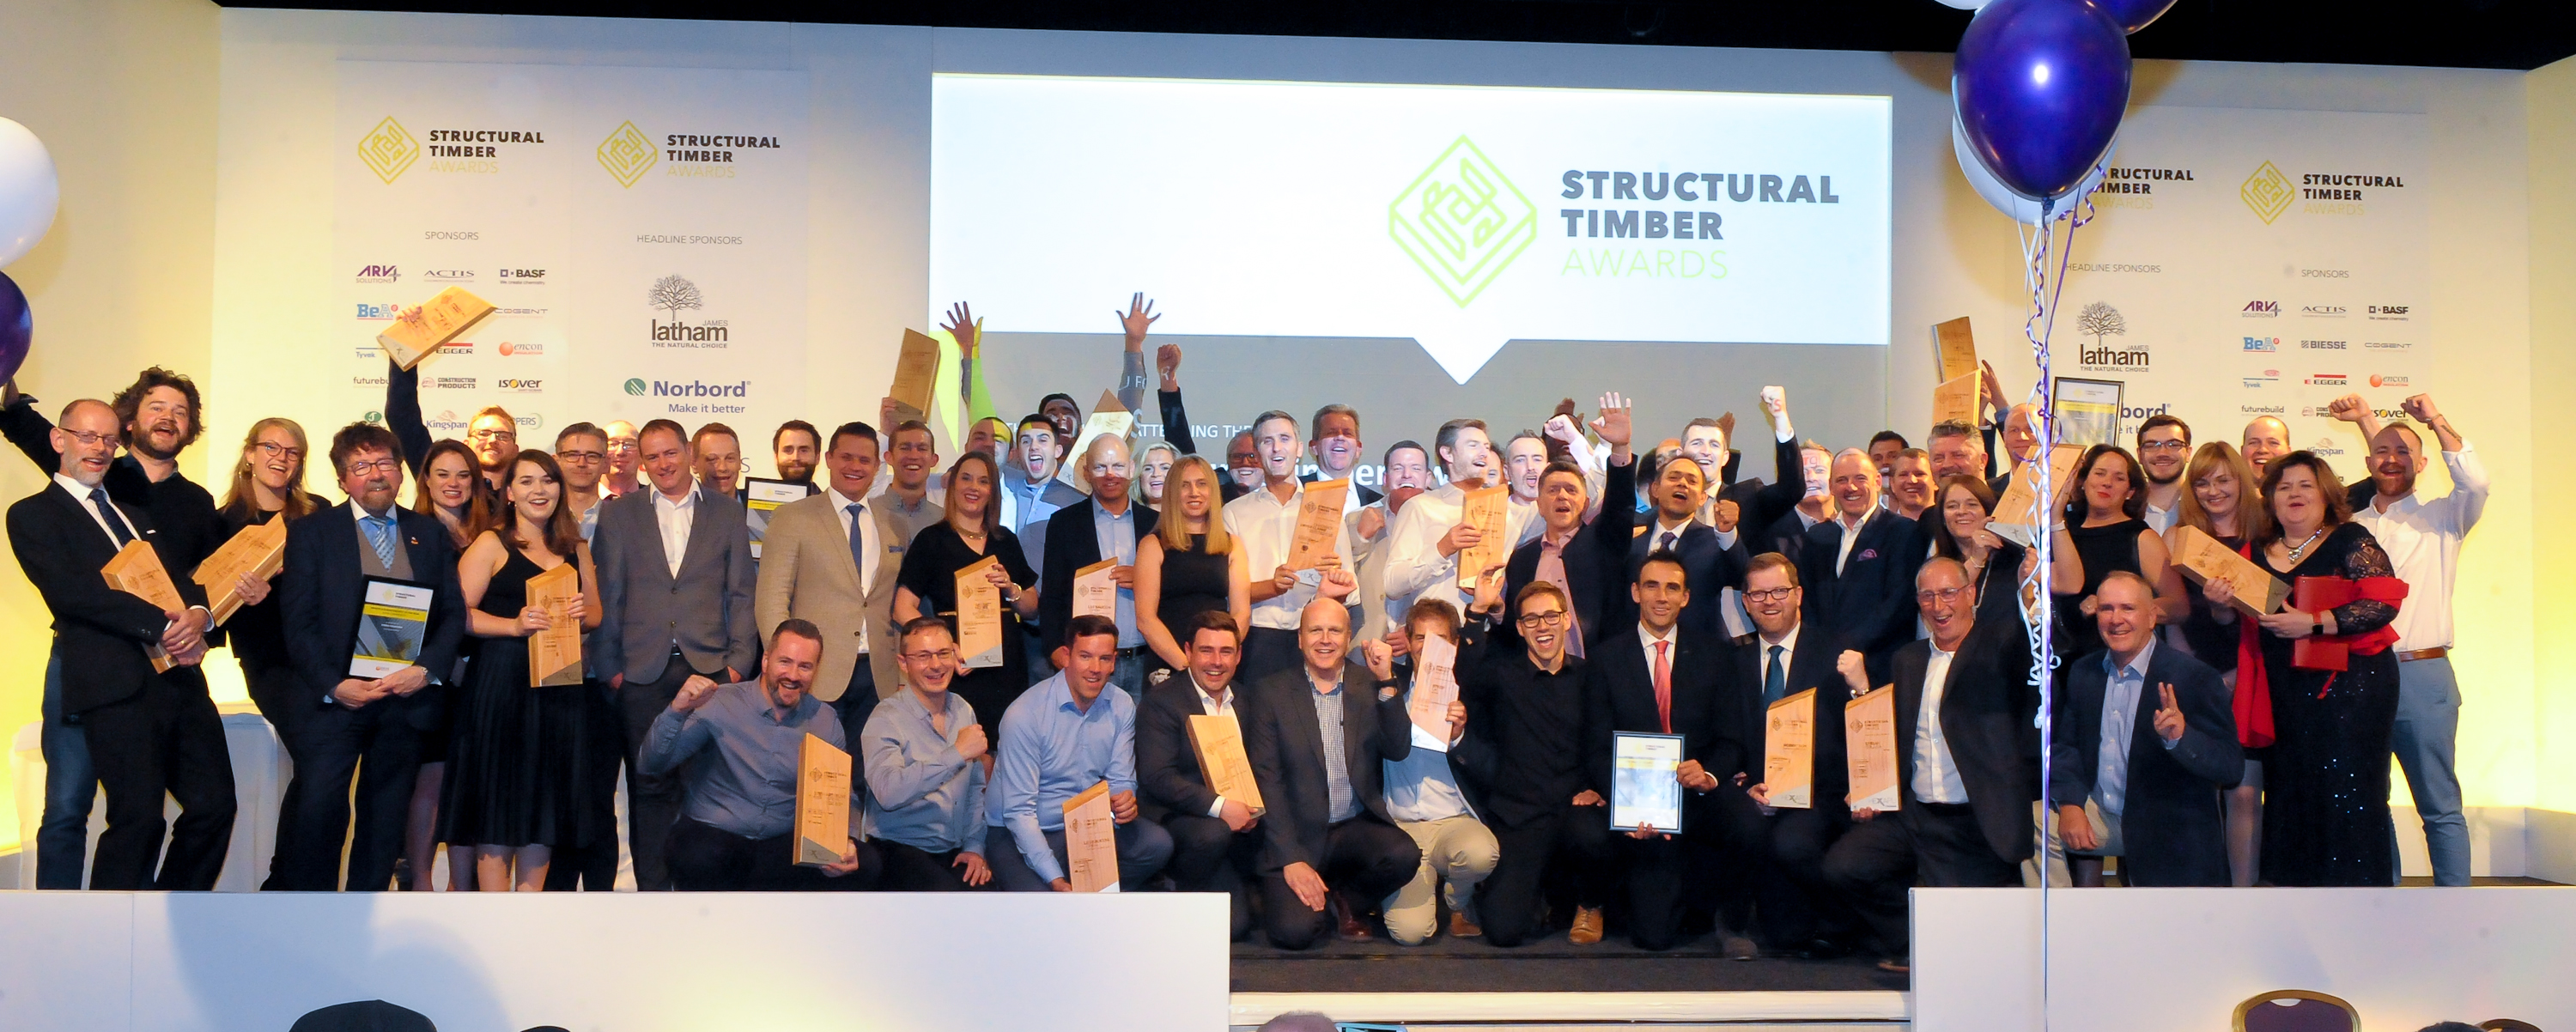 Structural Timber Awards - Winners Announced - Celebrating the Simply Outstanding